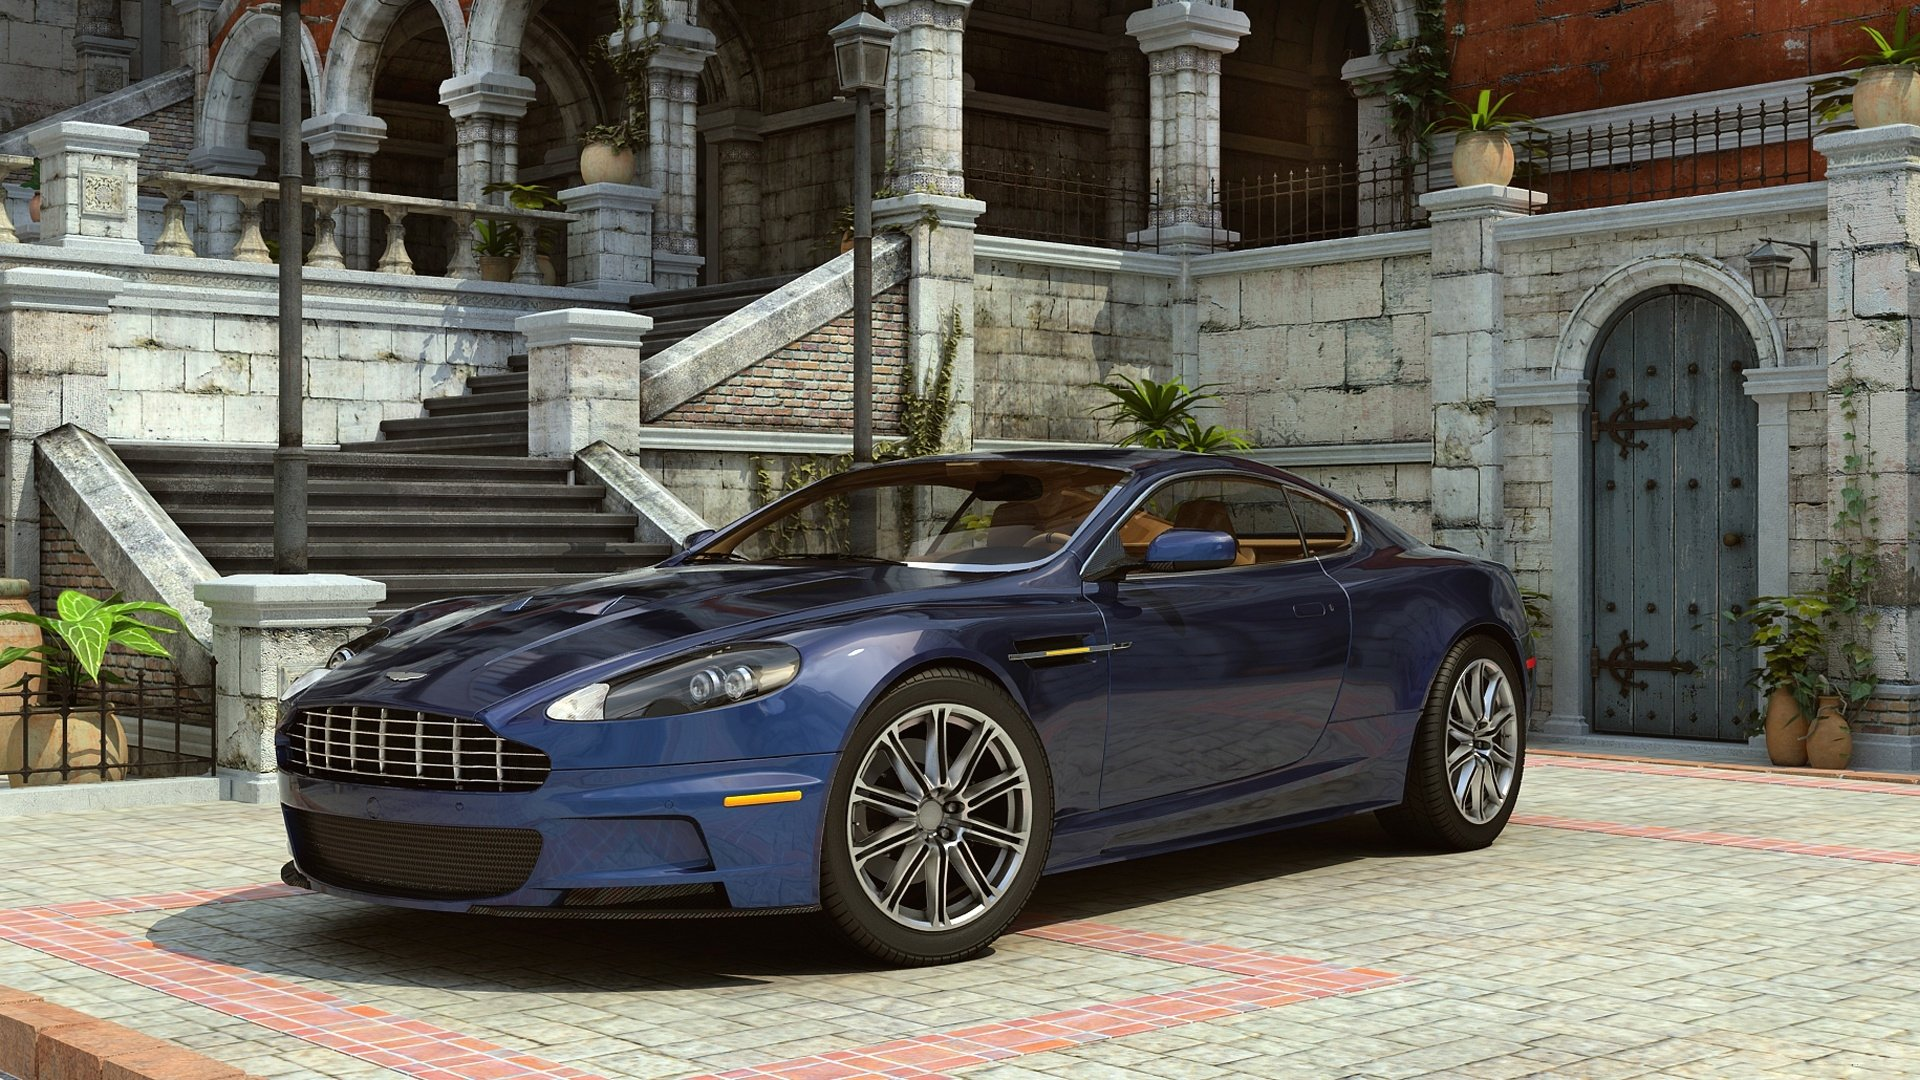 2 Aston Martin Dbs V12 Hd Wallpapers Background Images Wallpaper Abyss